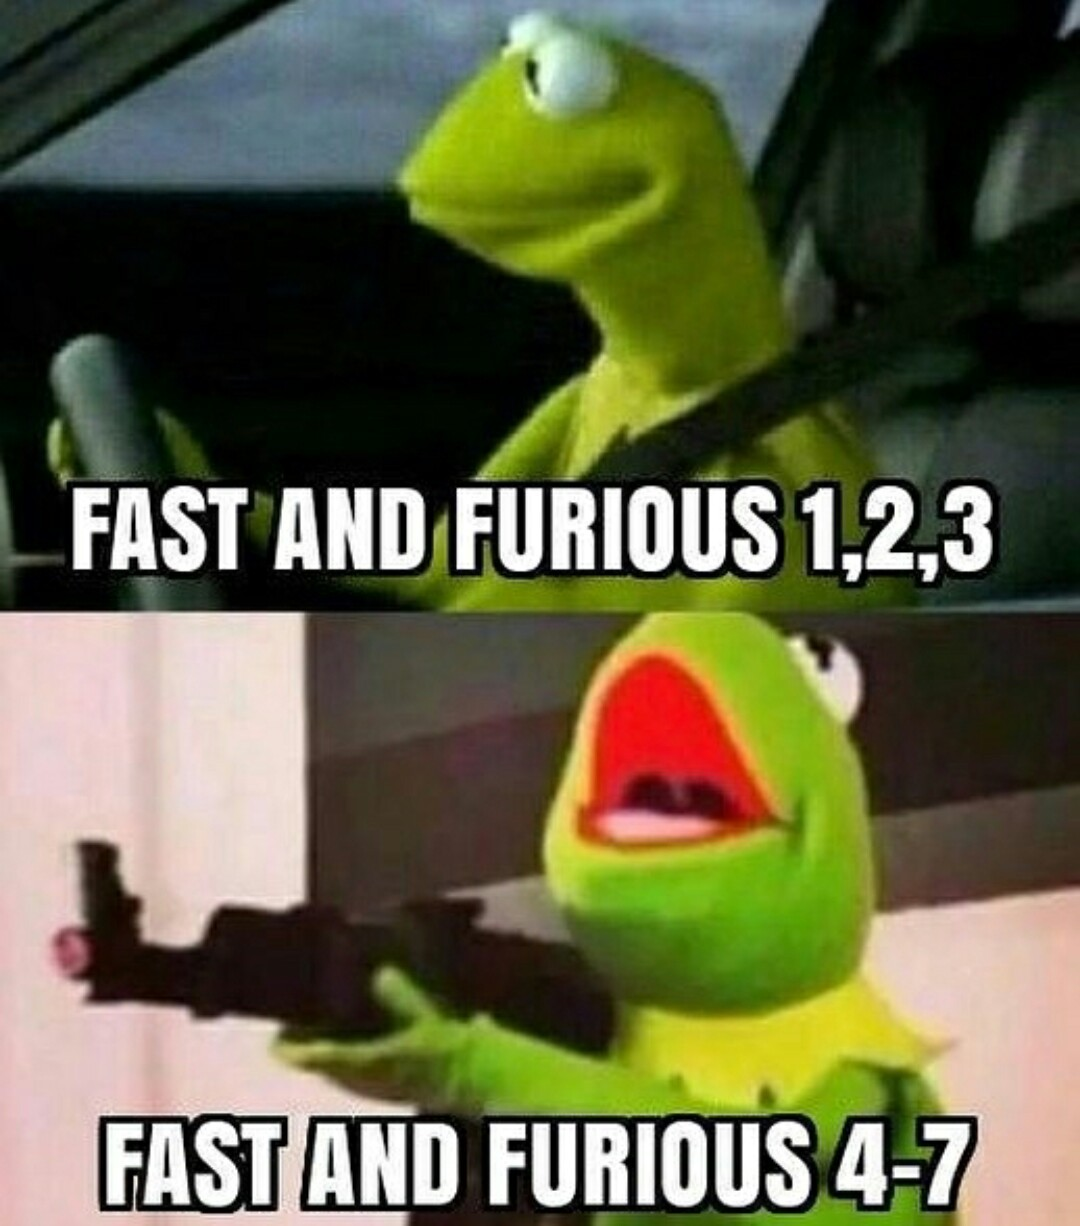 587d535ae3bef fast and muppets meme by sachouille9 ) memedroid